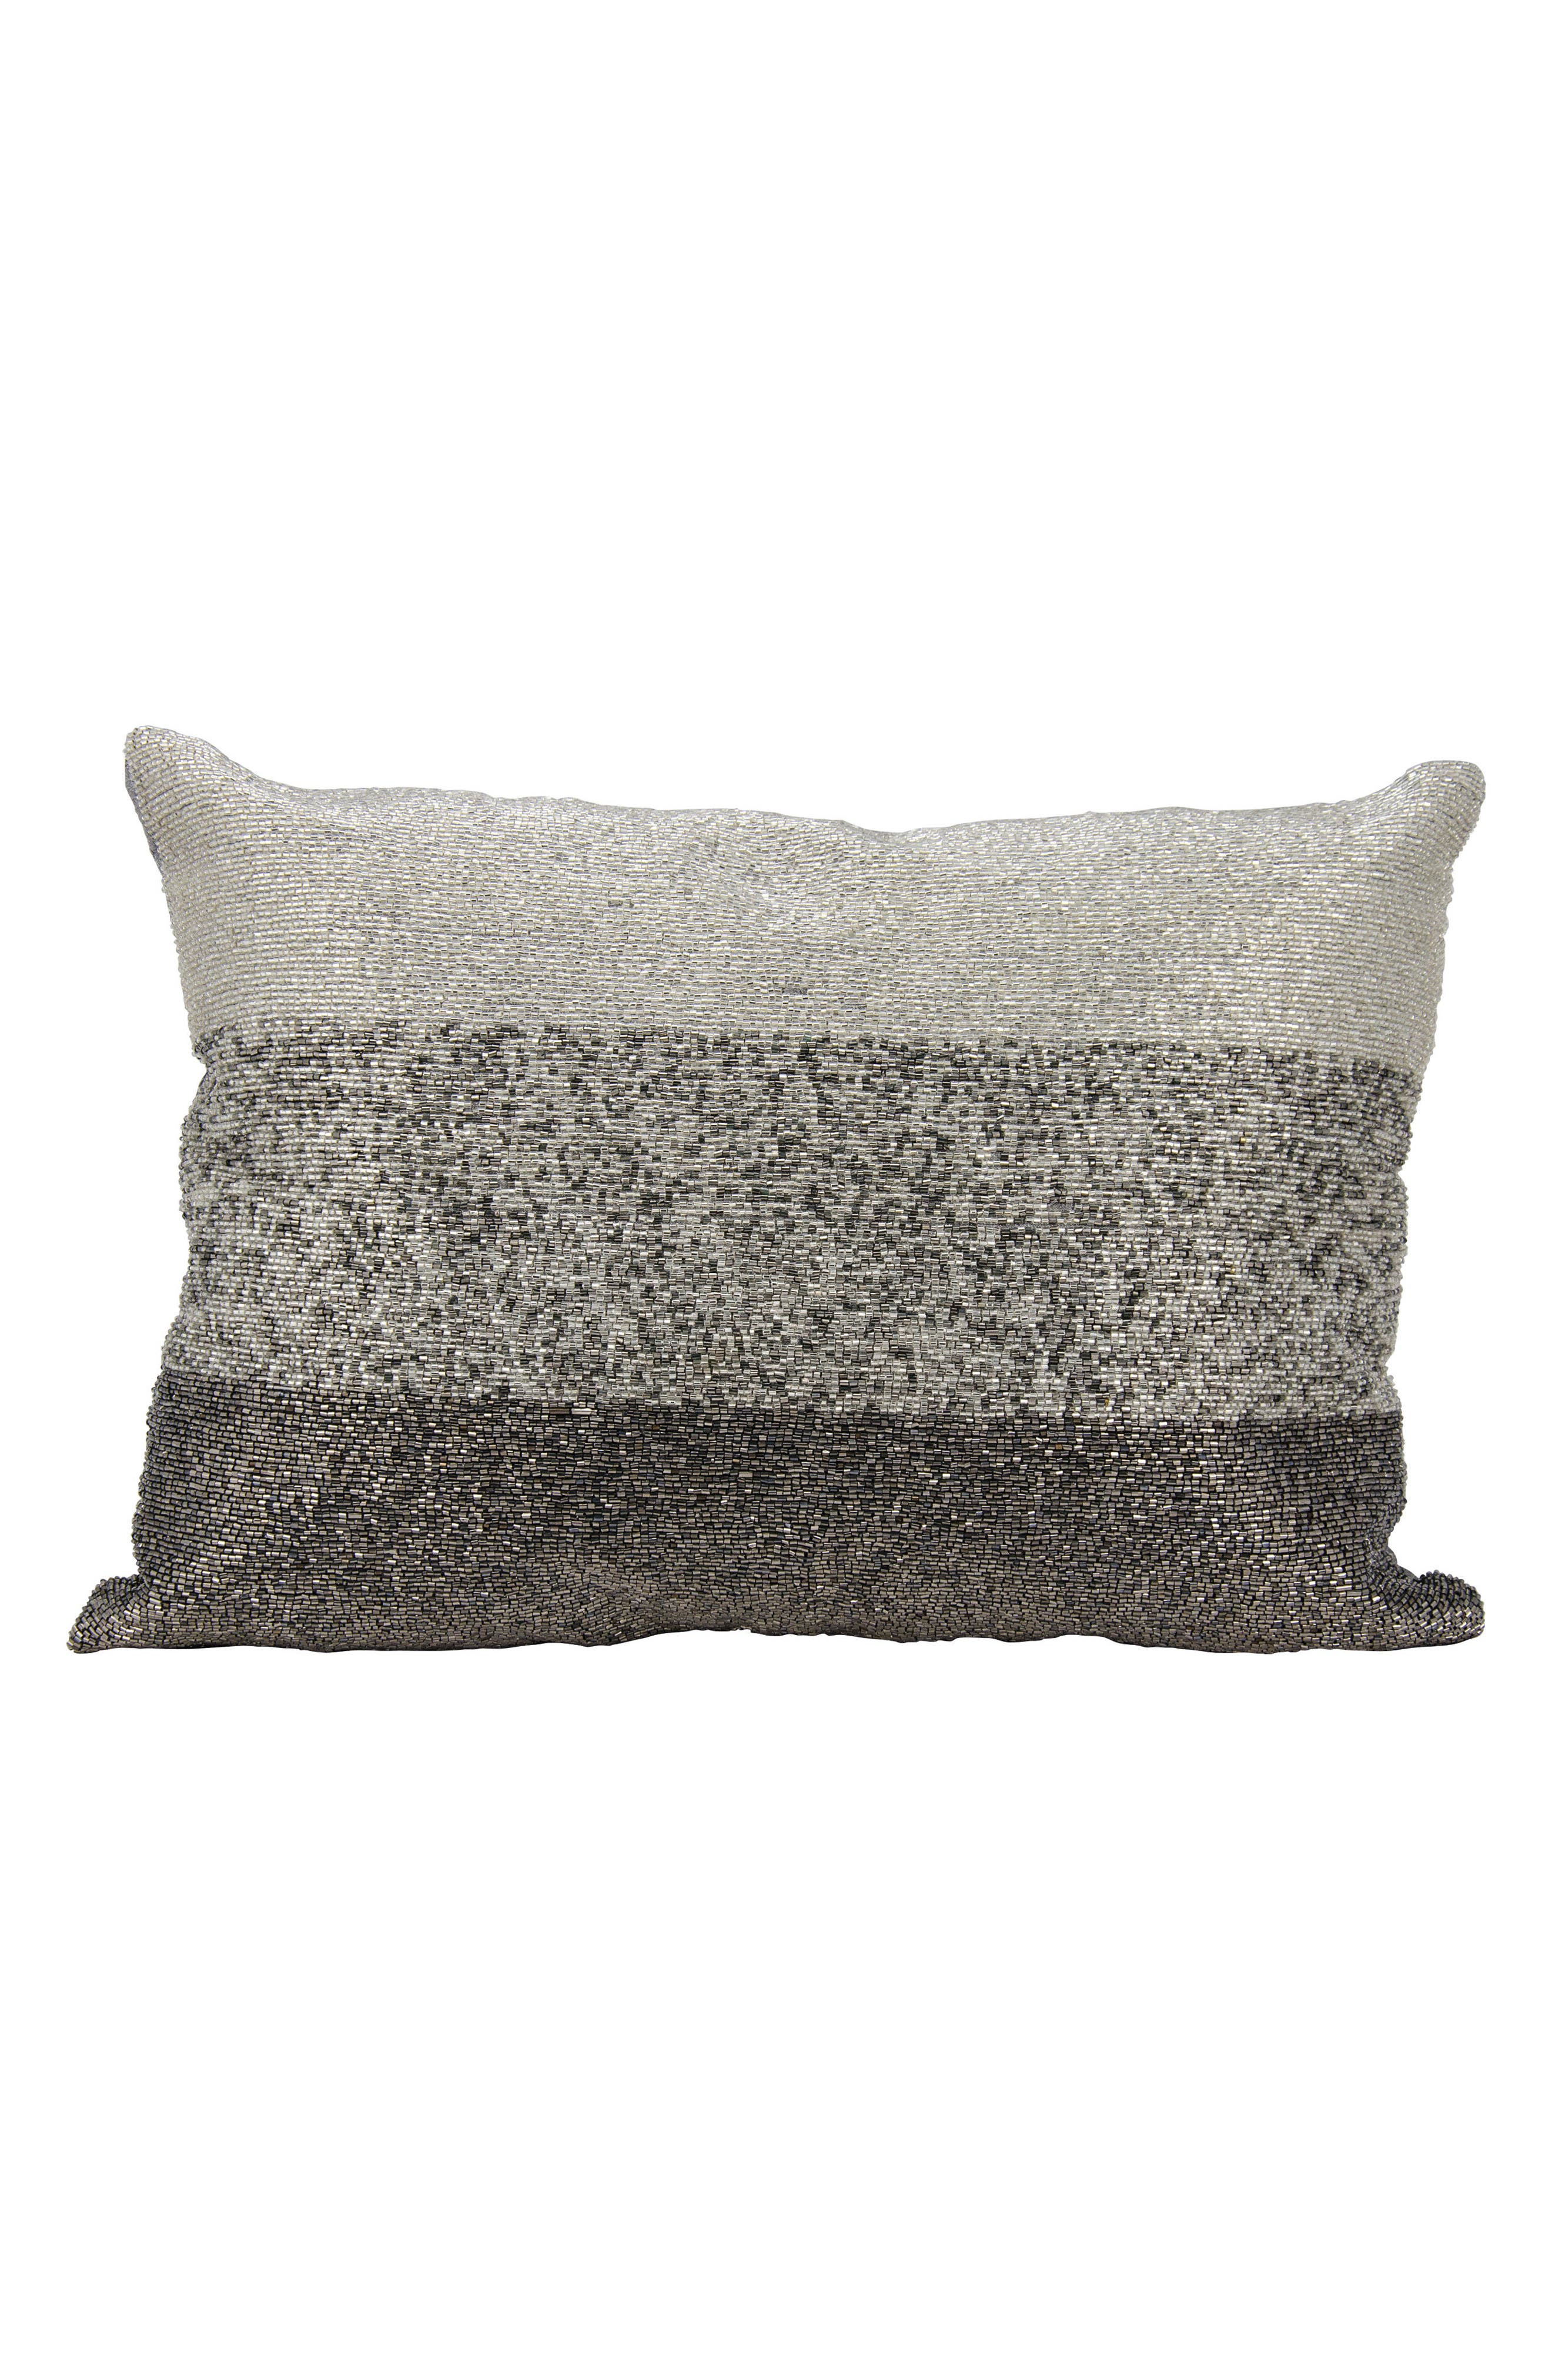 Beaded Accent Pillow,                         Main,                         color, 041